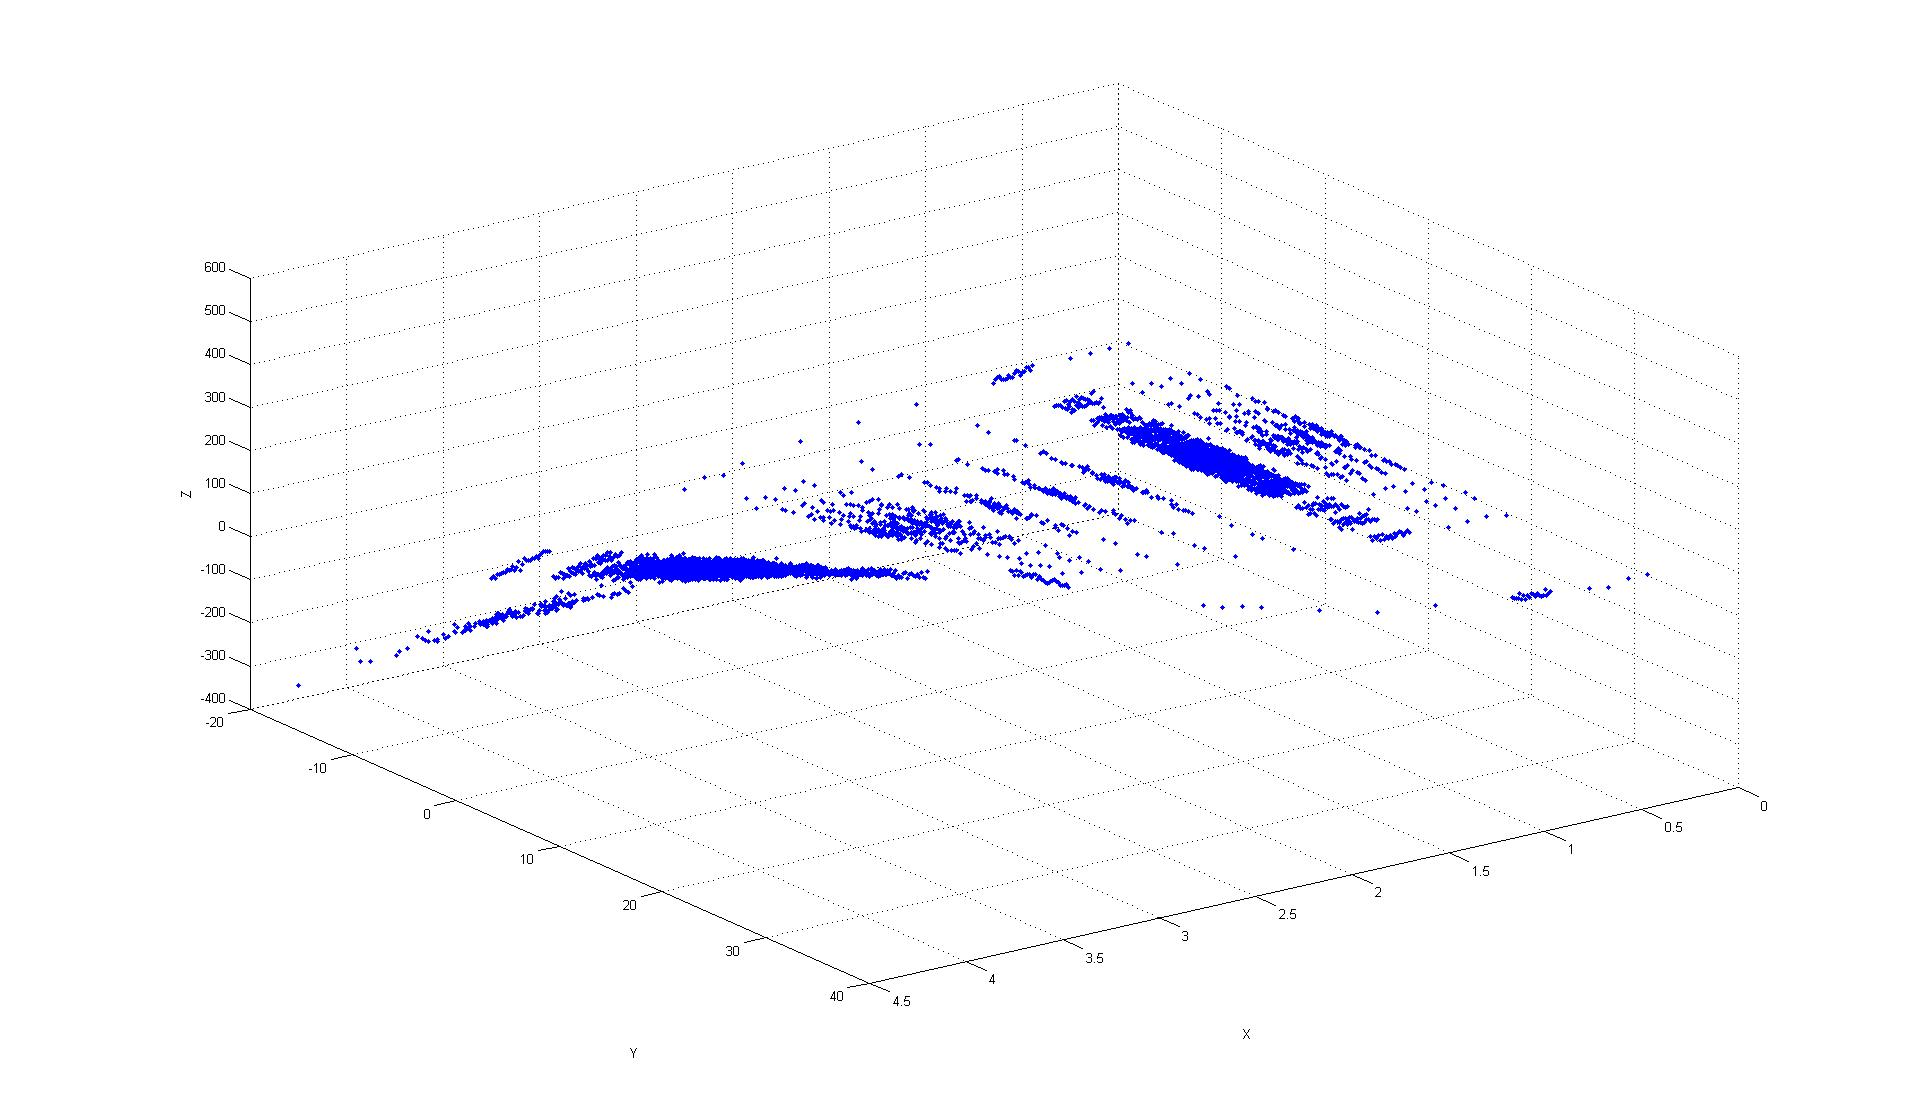 Dealing with Overplotting and missing data of a 3-D